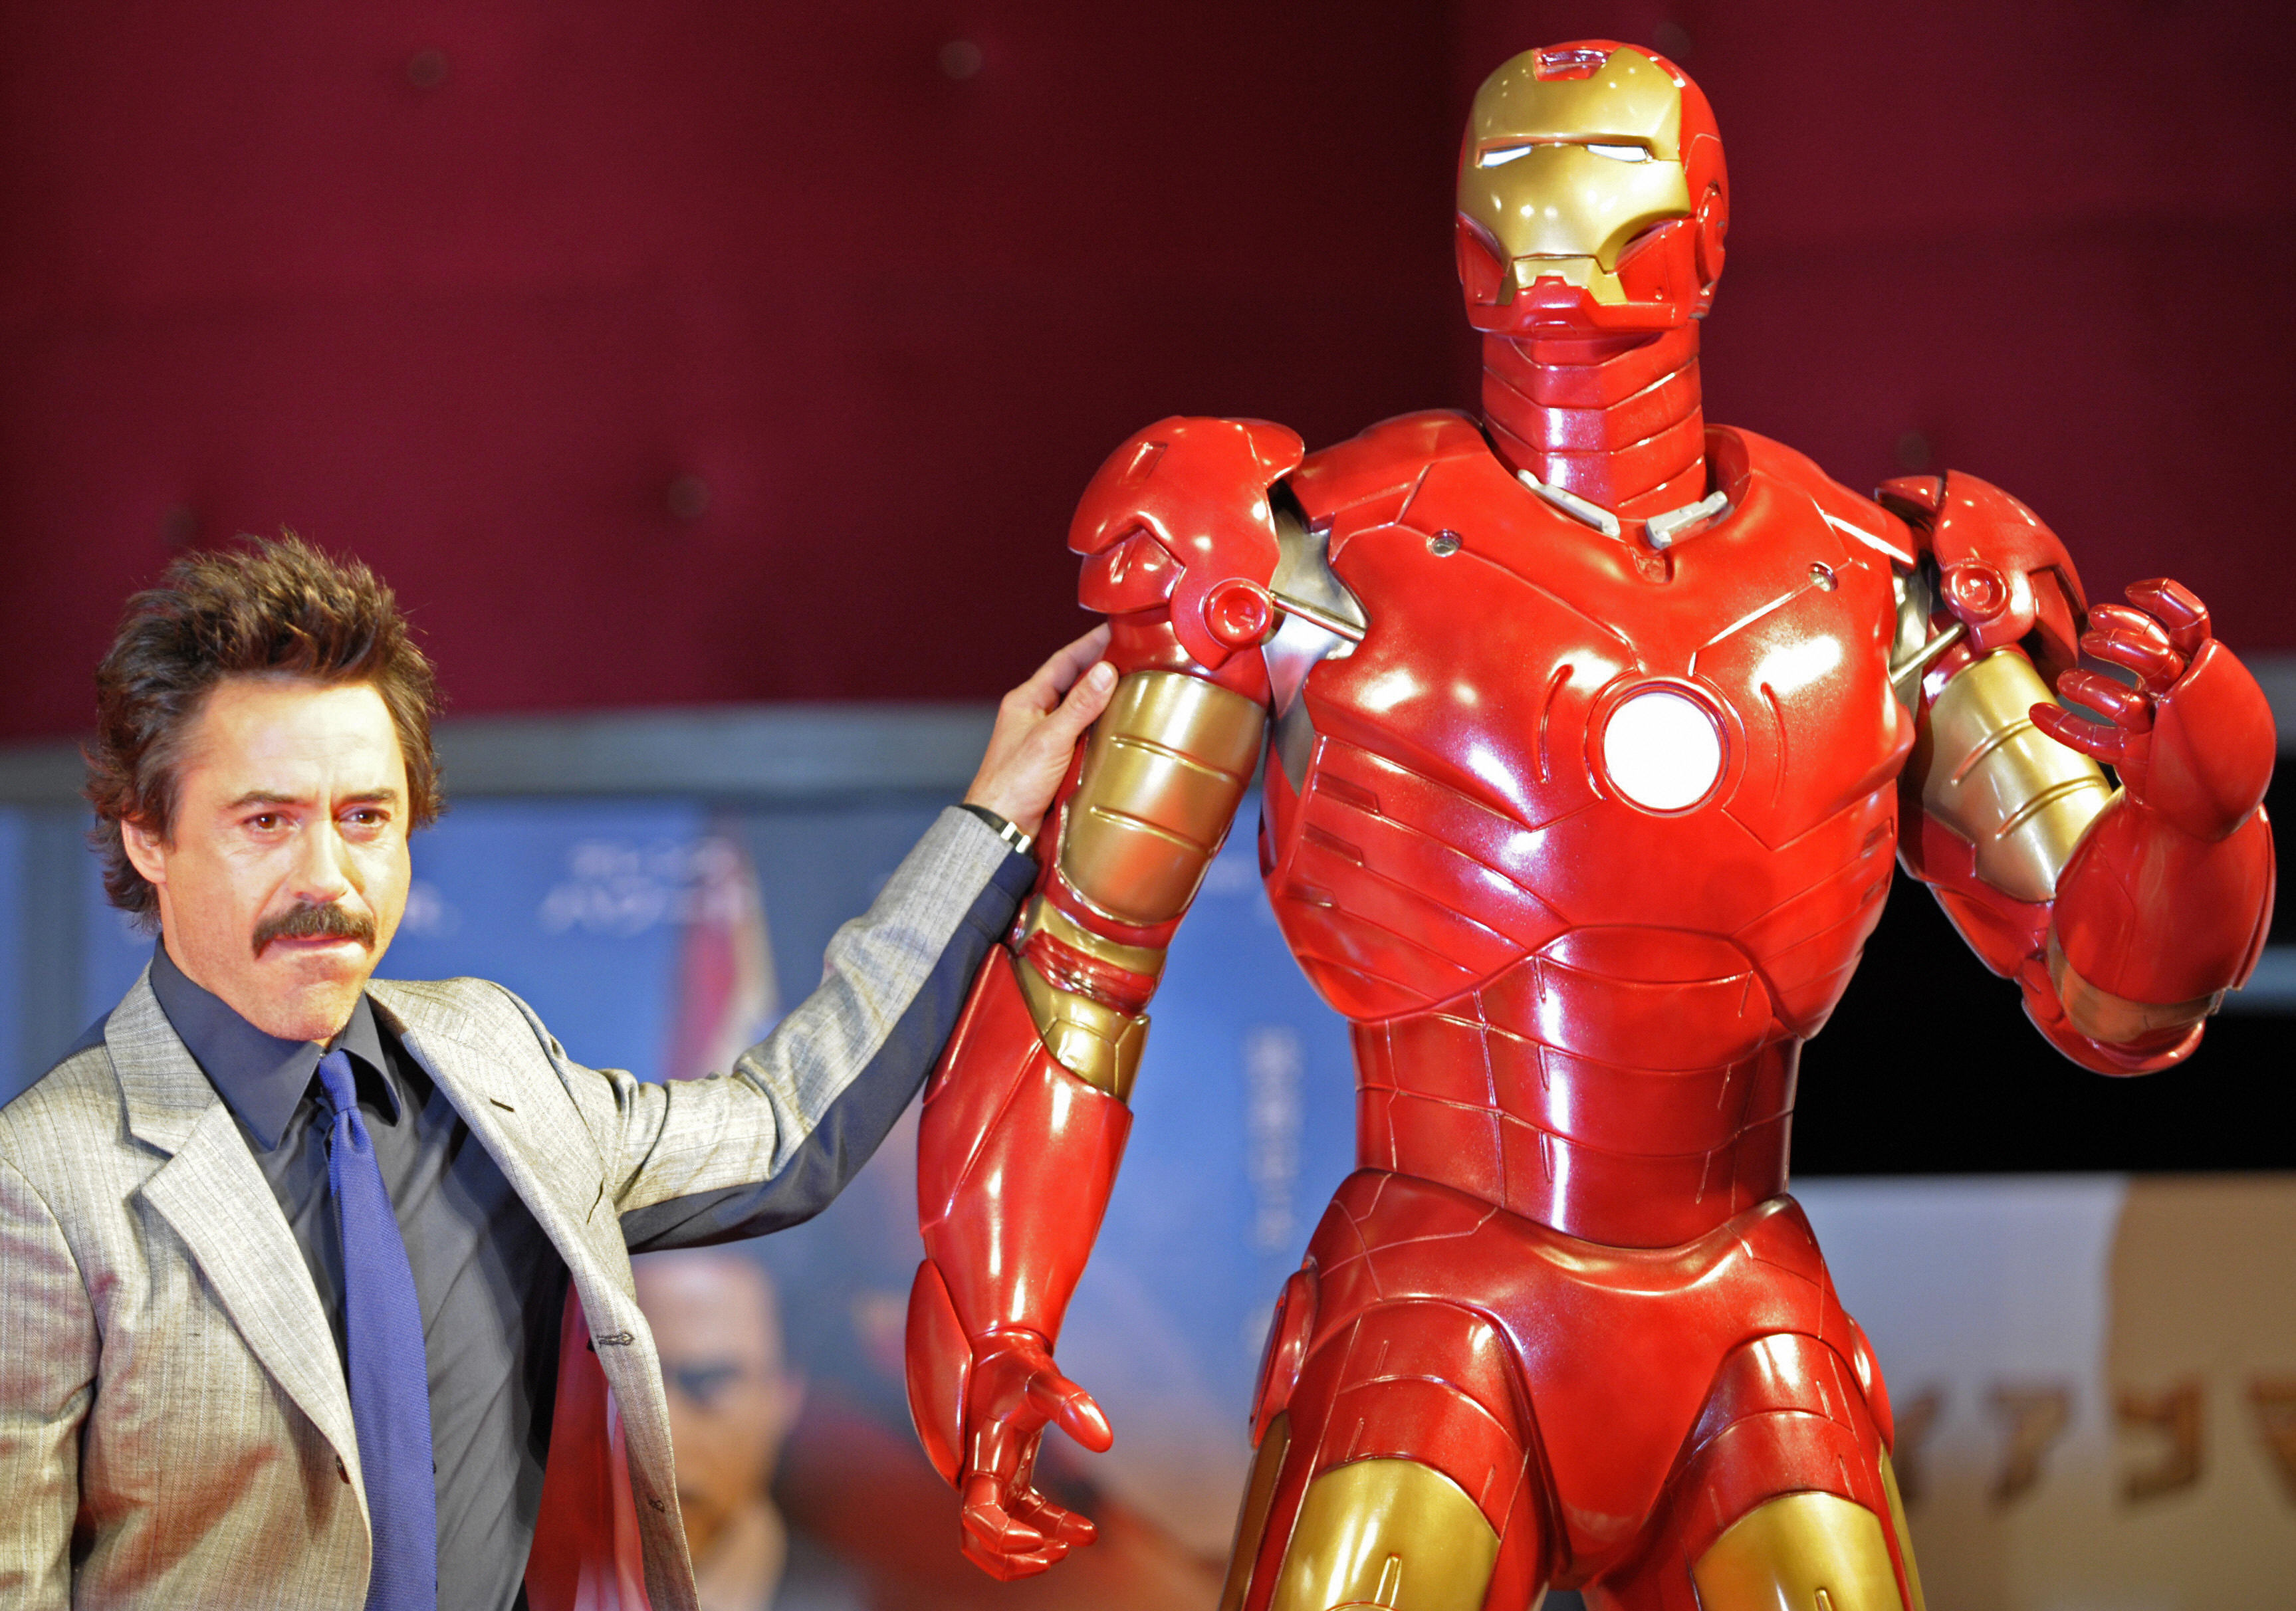 US actor Robert Downey Jr. poses by a life-size Iron Man model during a press conference on his latest movie Iron Man, in Tokyo, on September 3, 2008. The movie will roadshow in Japan from September 27.   AFP PHOTO / TOSHIFUMI KITAMURA (Photo credit should read TOSHIFUMI KITAMURA/AFP/Getty Images)